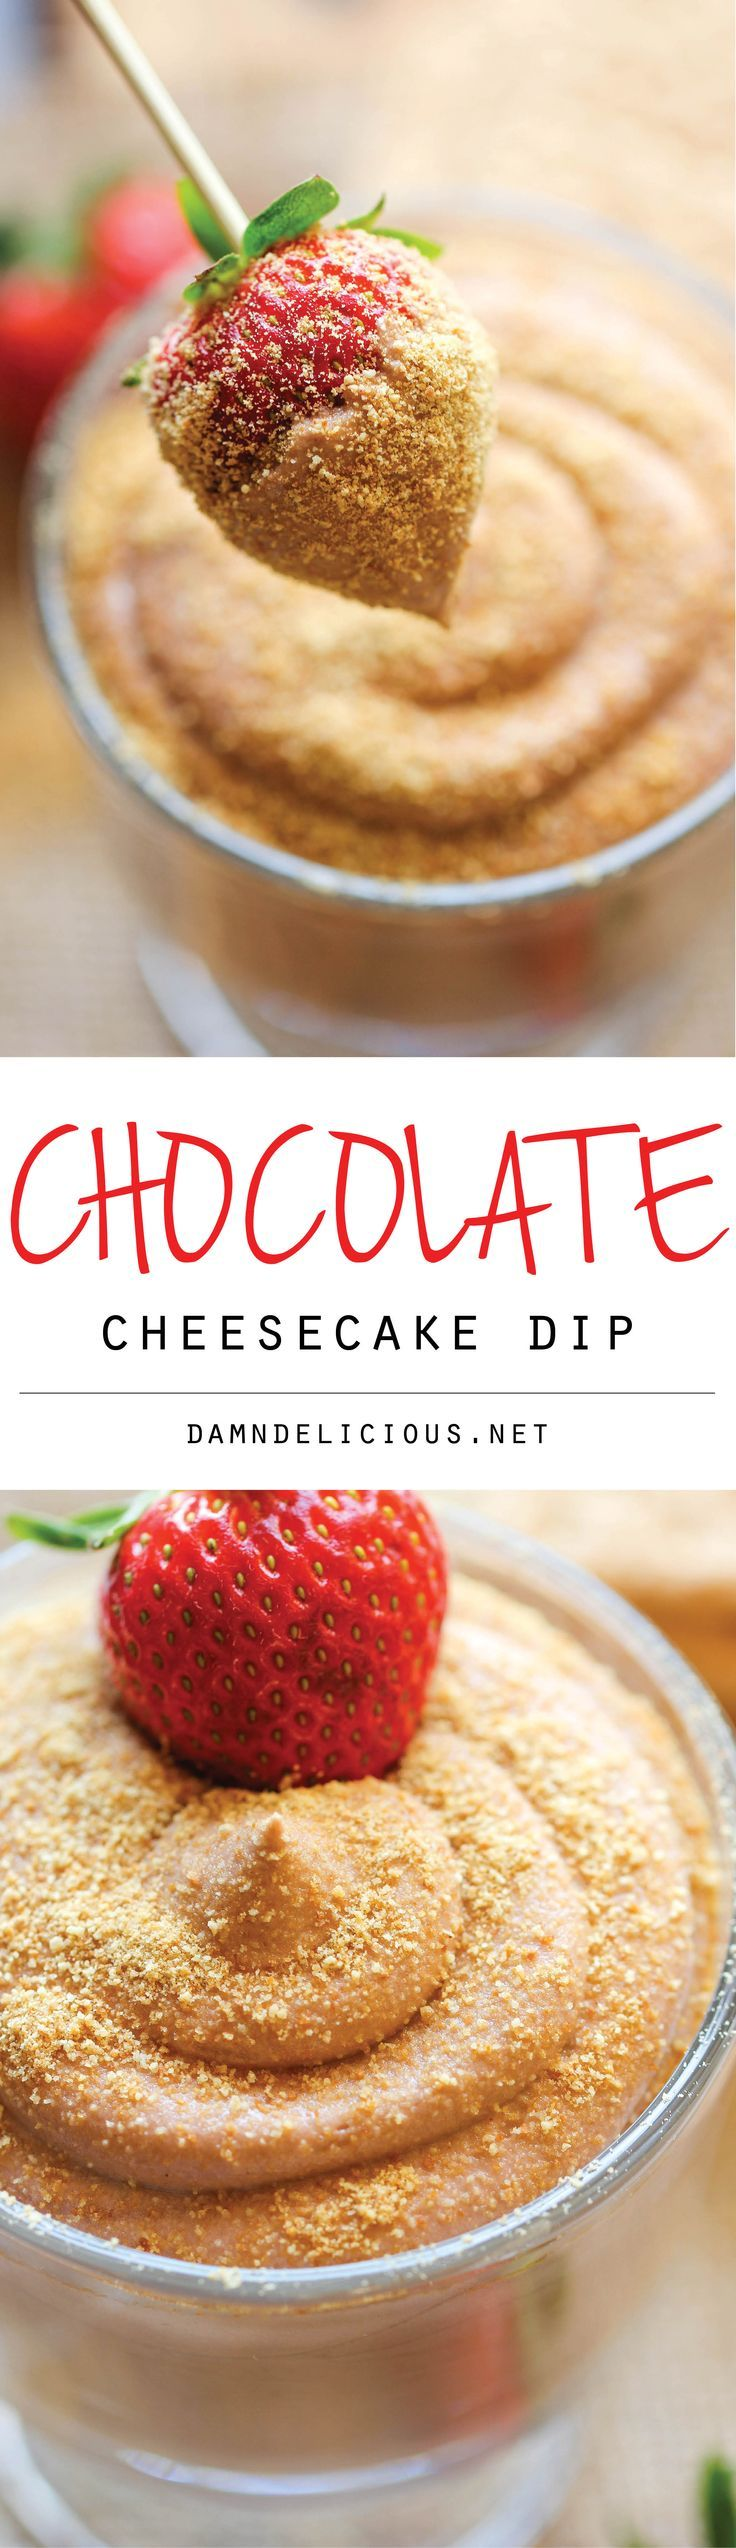 Caramel Cheesecake Dip | Recipe | Cheesecake Dip, Caramel Cheesecake and Party Dips